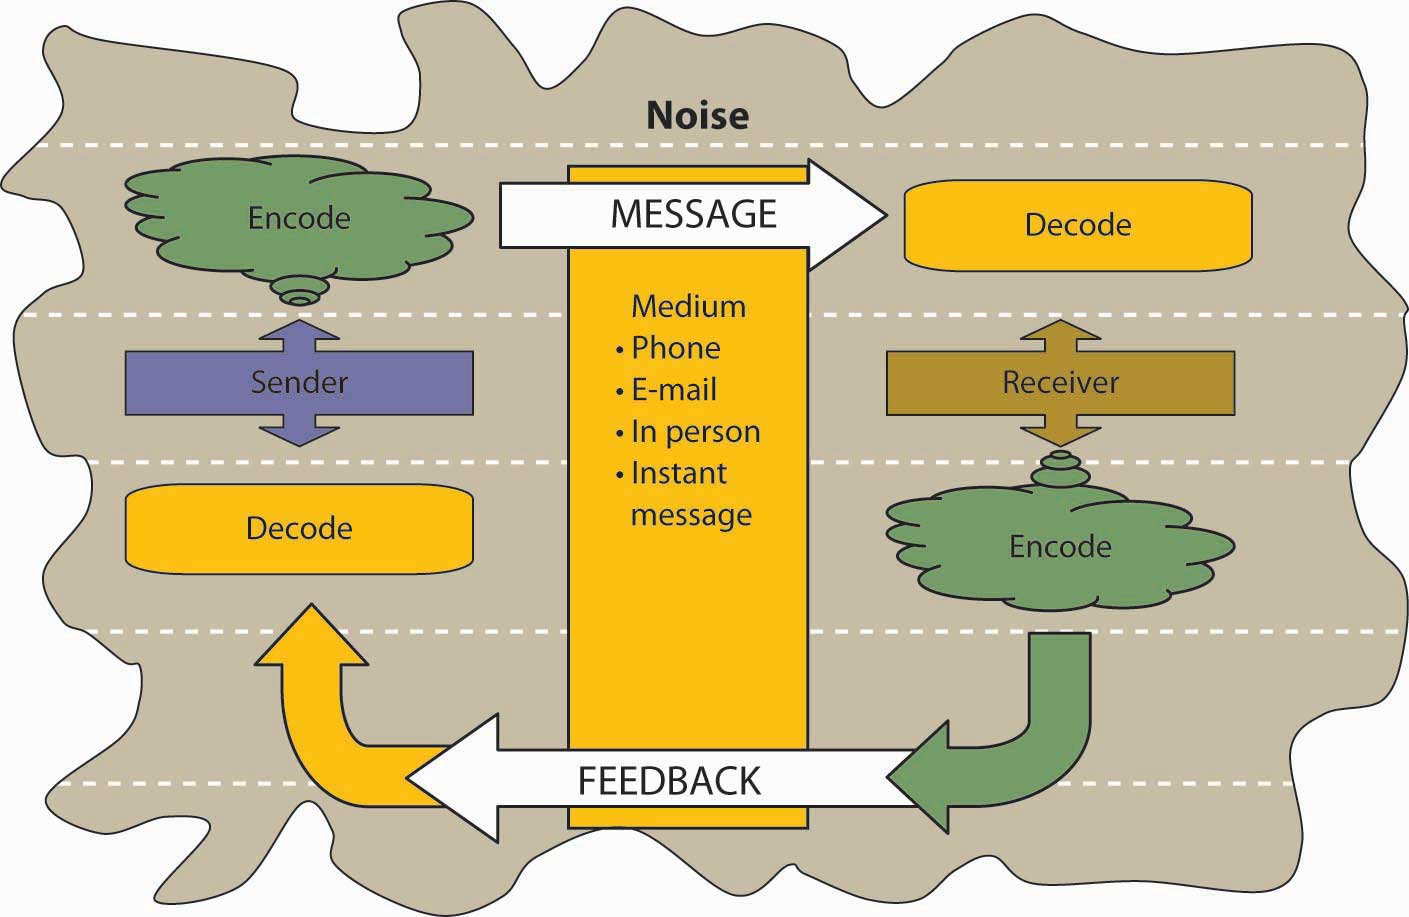 Figure 12.5 The Process Model